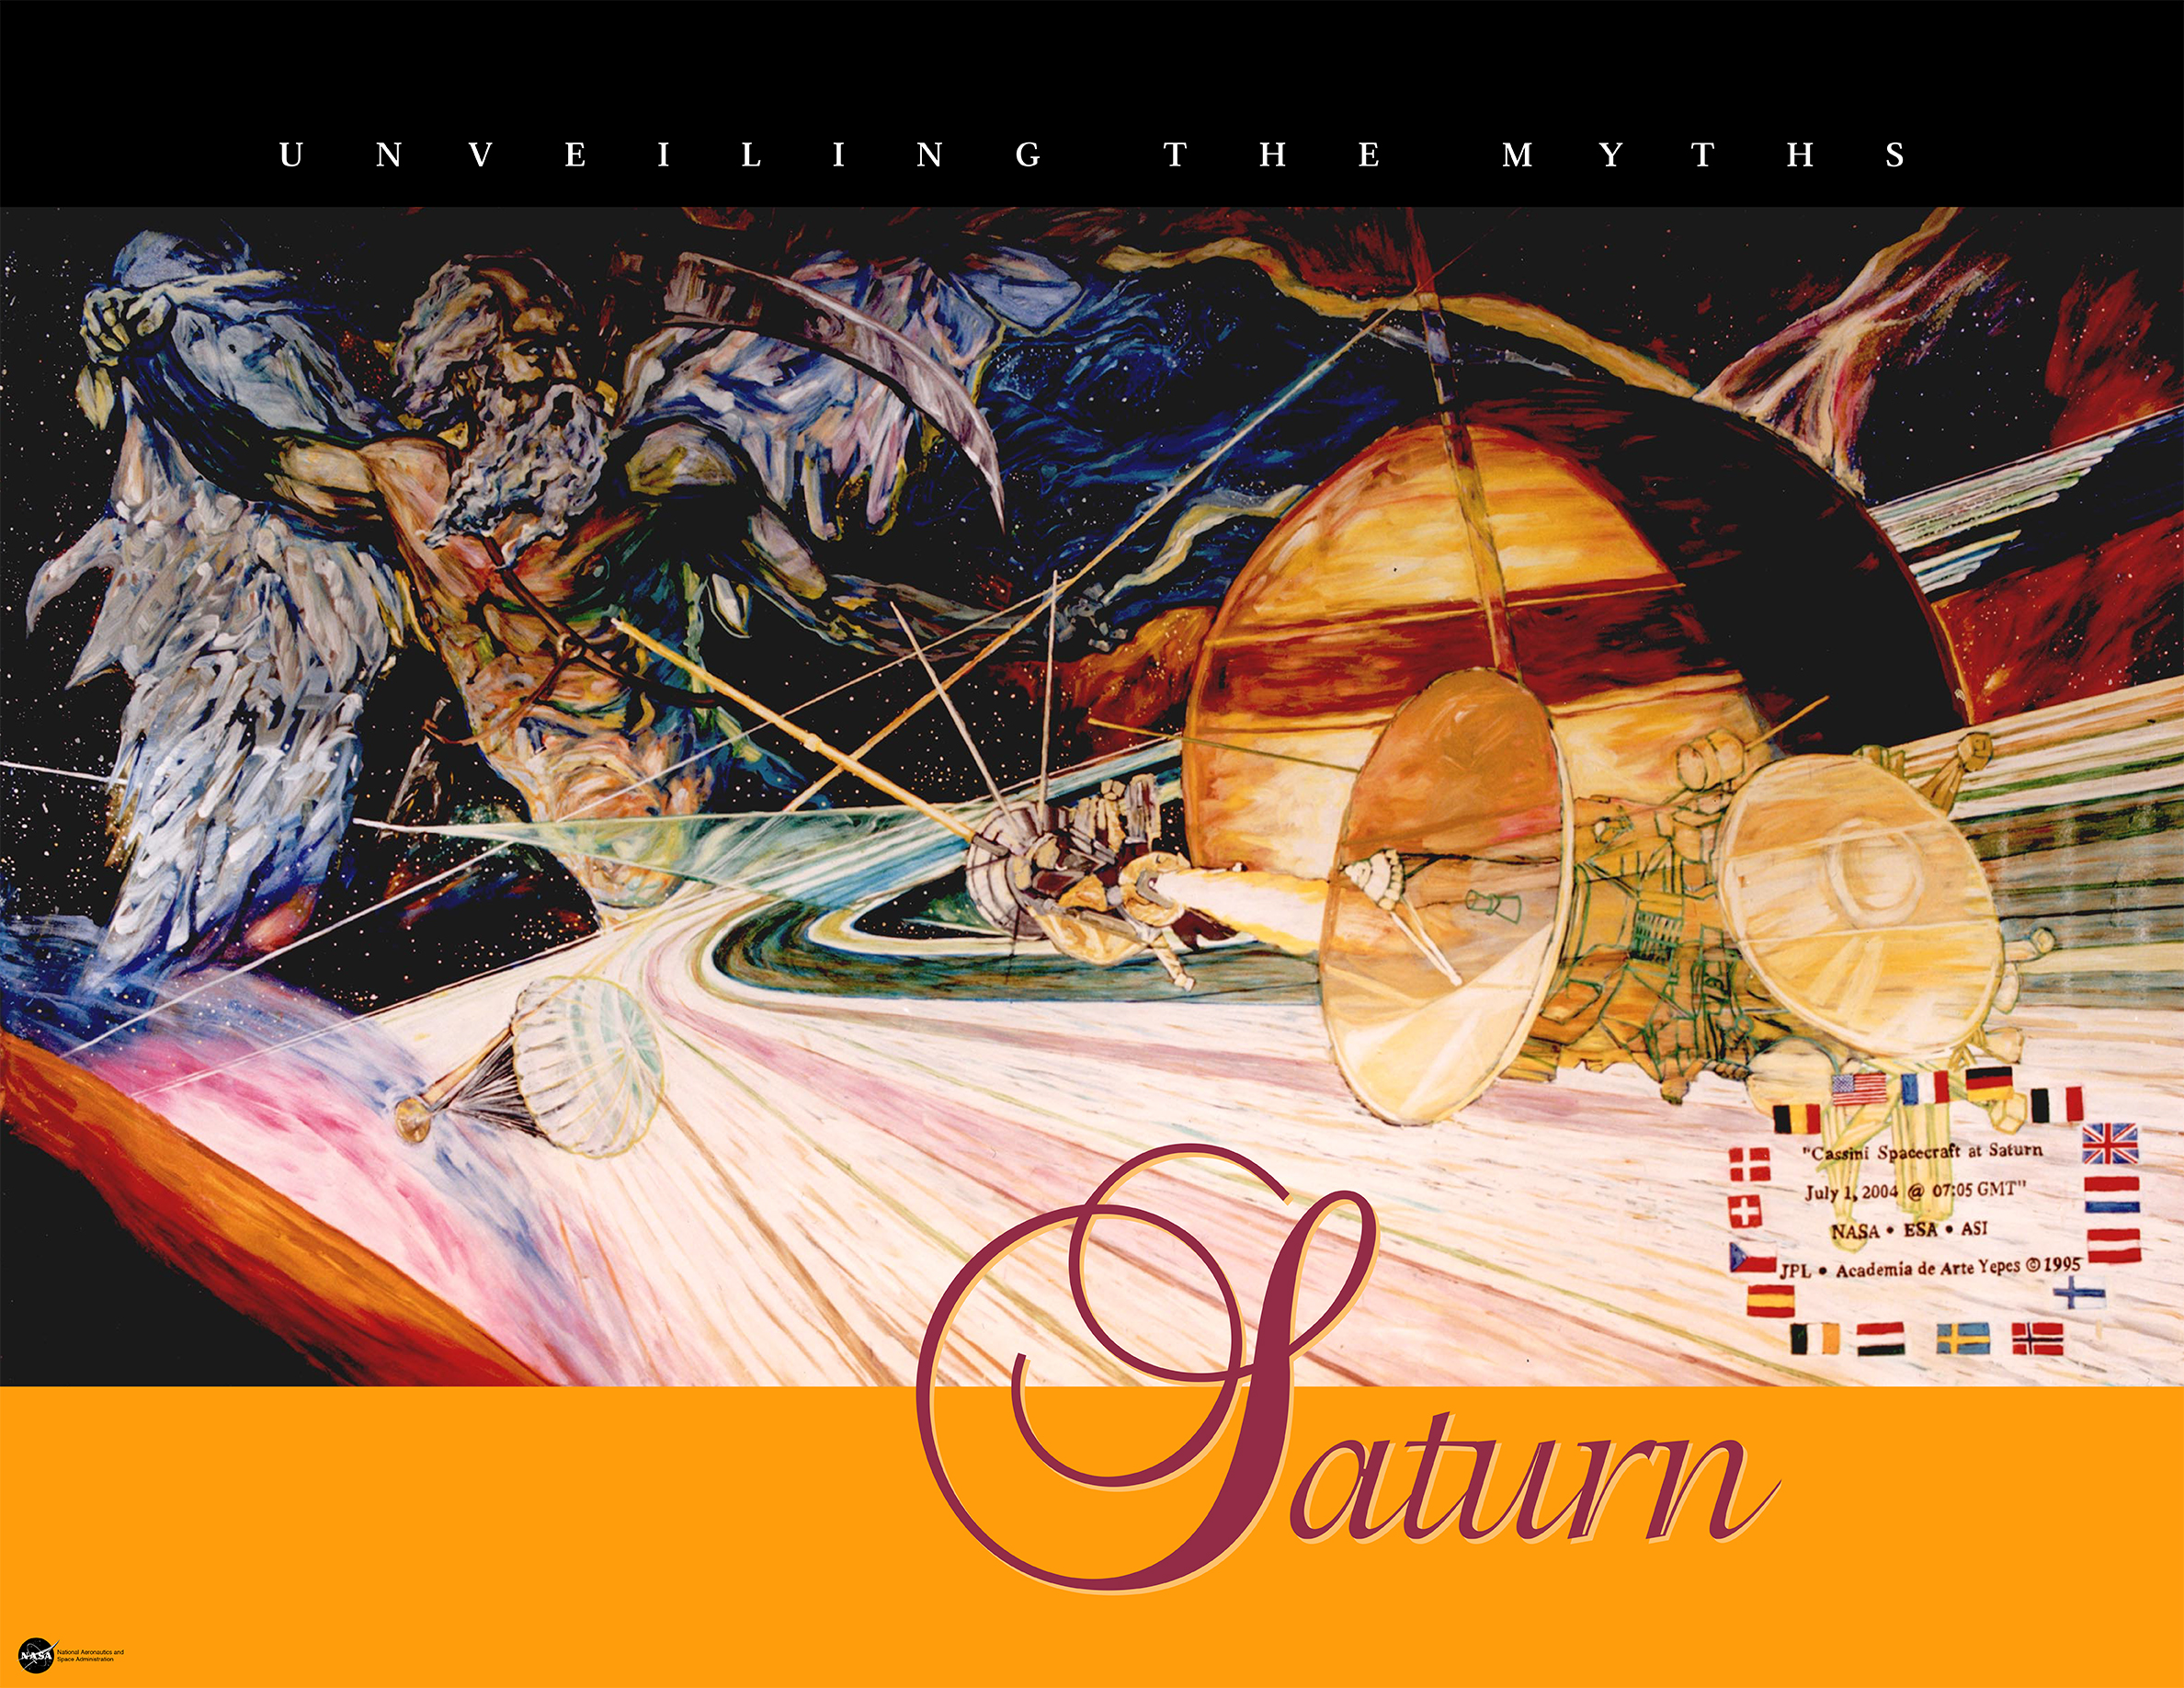 This poster depicts the mythological story of Saturn combined with images of space exploration.